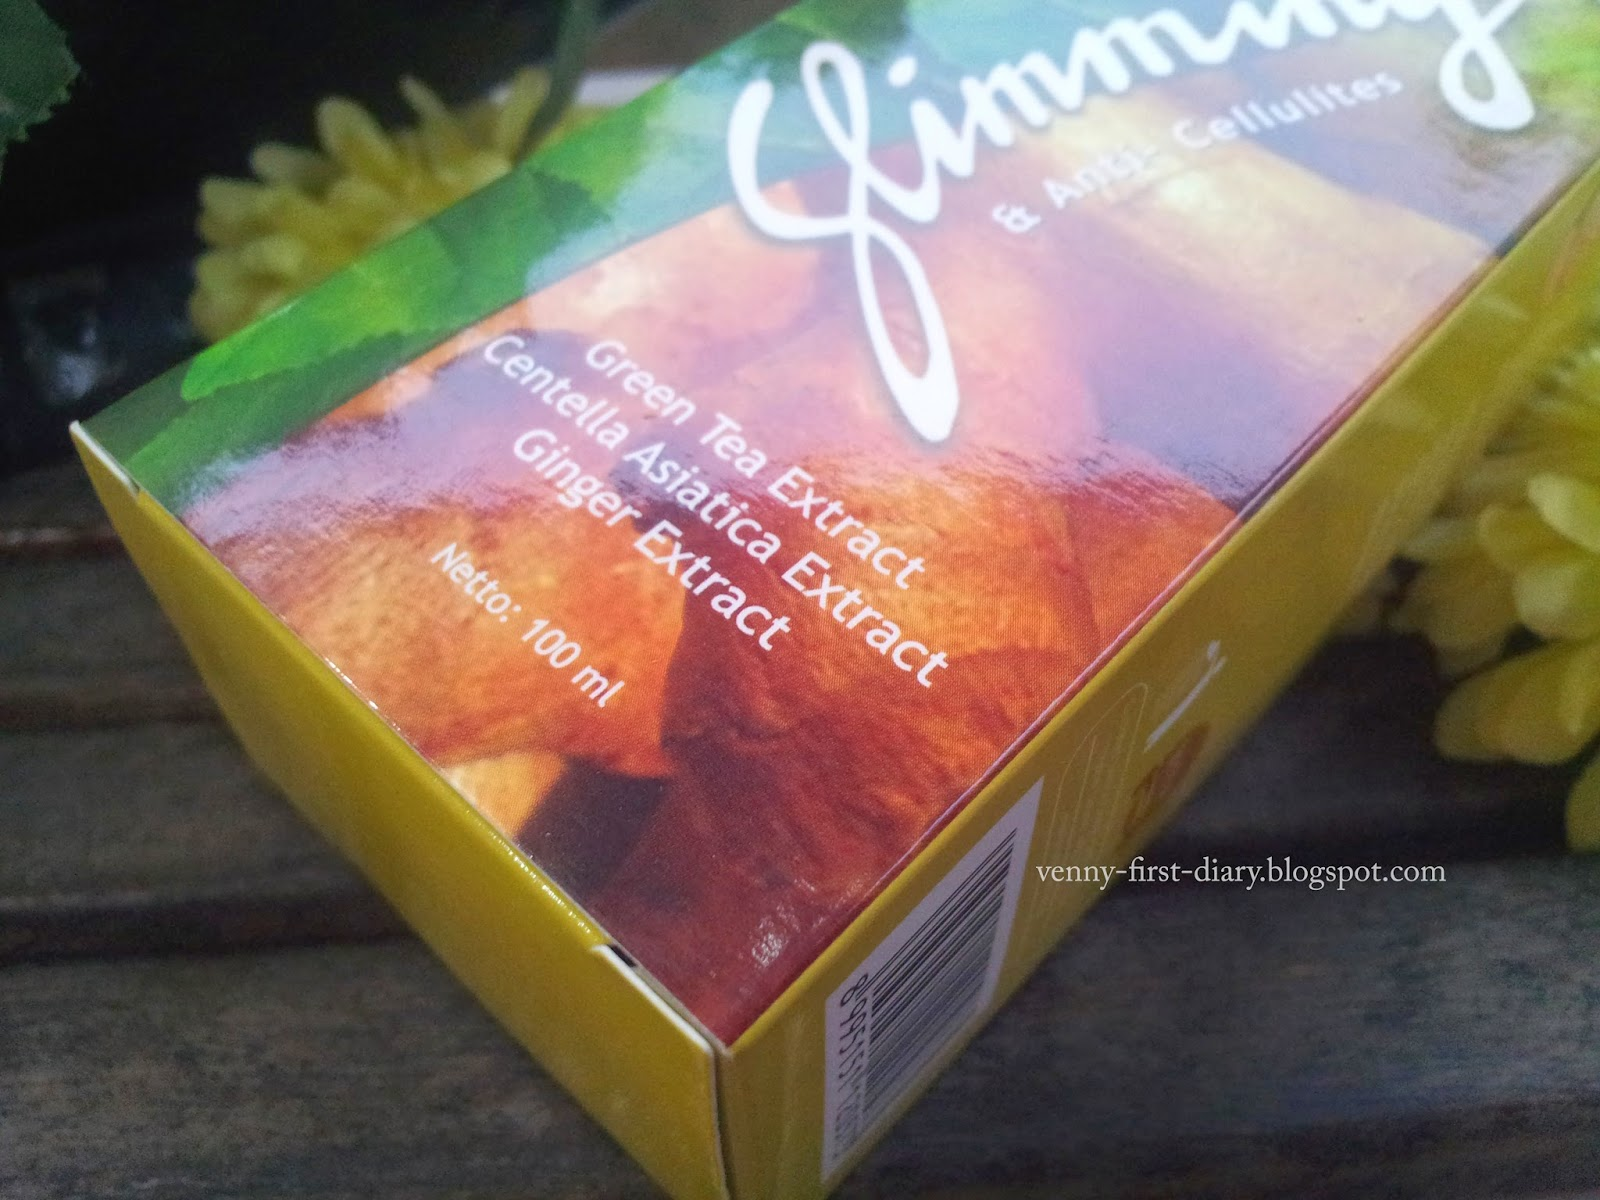 Review Mustika Ratu Slimming Gel plus jahe - Venny Firstyani